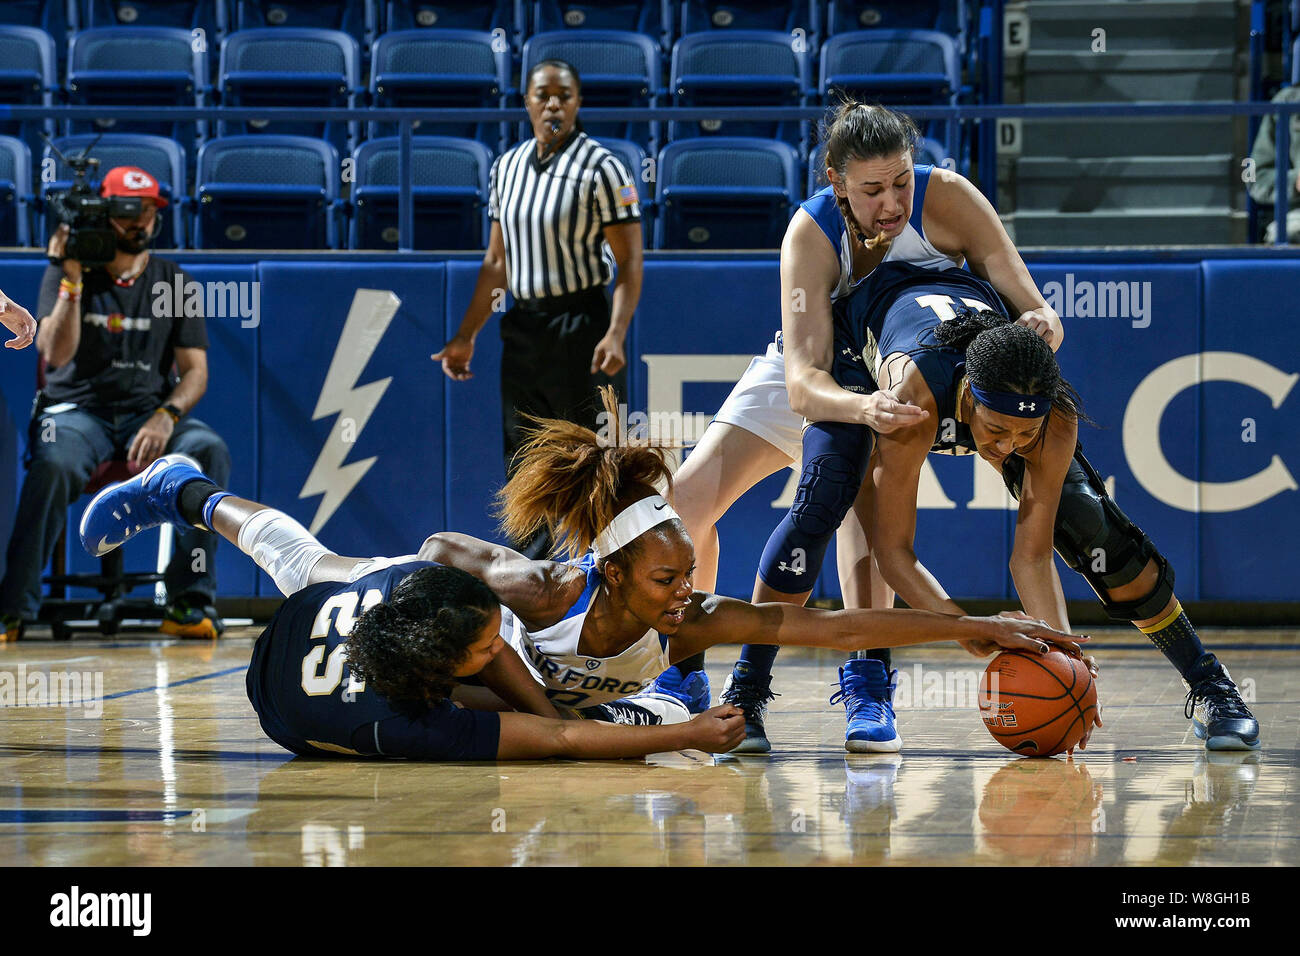 Dee Bennett, a junior, battles for the ball as Air Force hosted Navy at the U.S. Air Force Academy in Colorado Springs, Colo., Nov. 29, 2016. Stock Photo